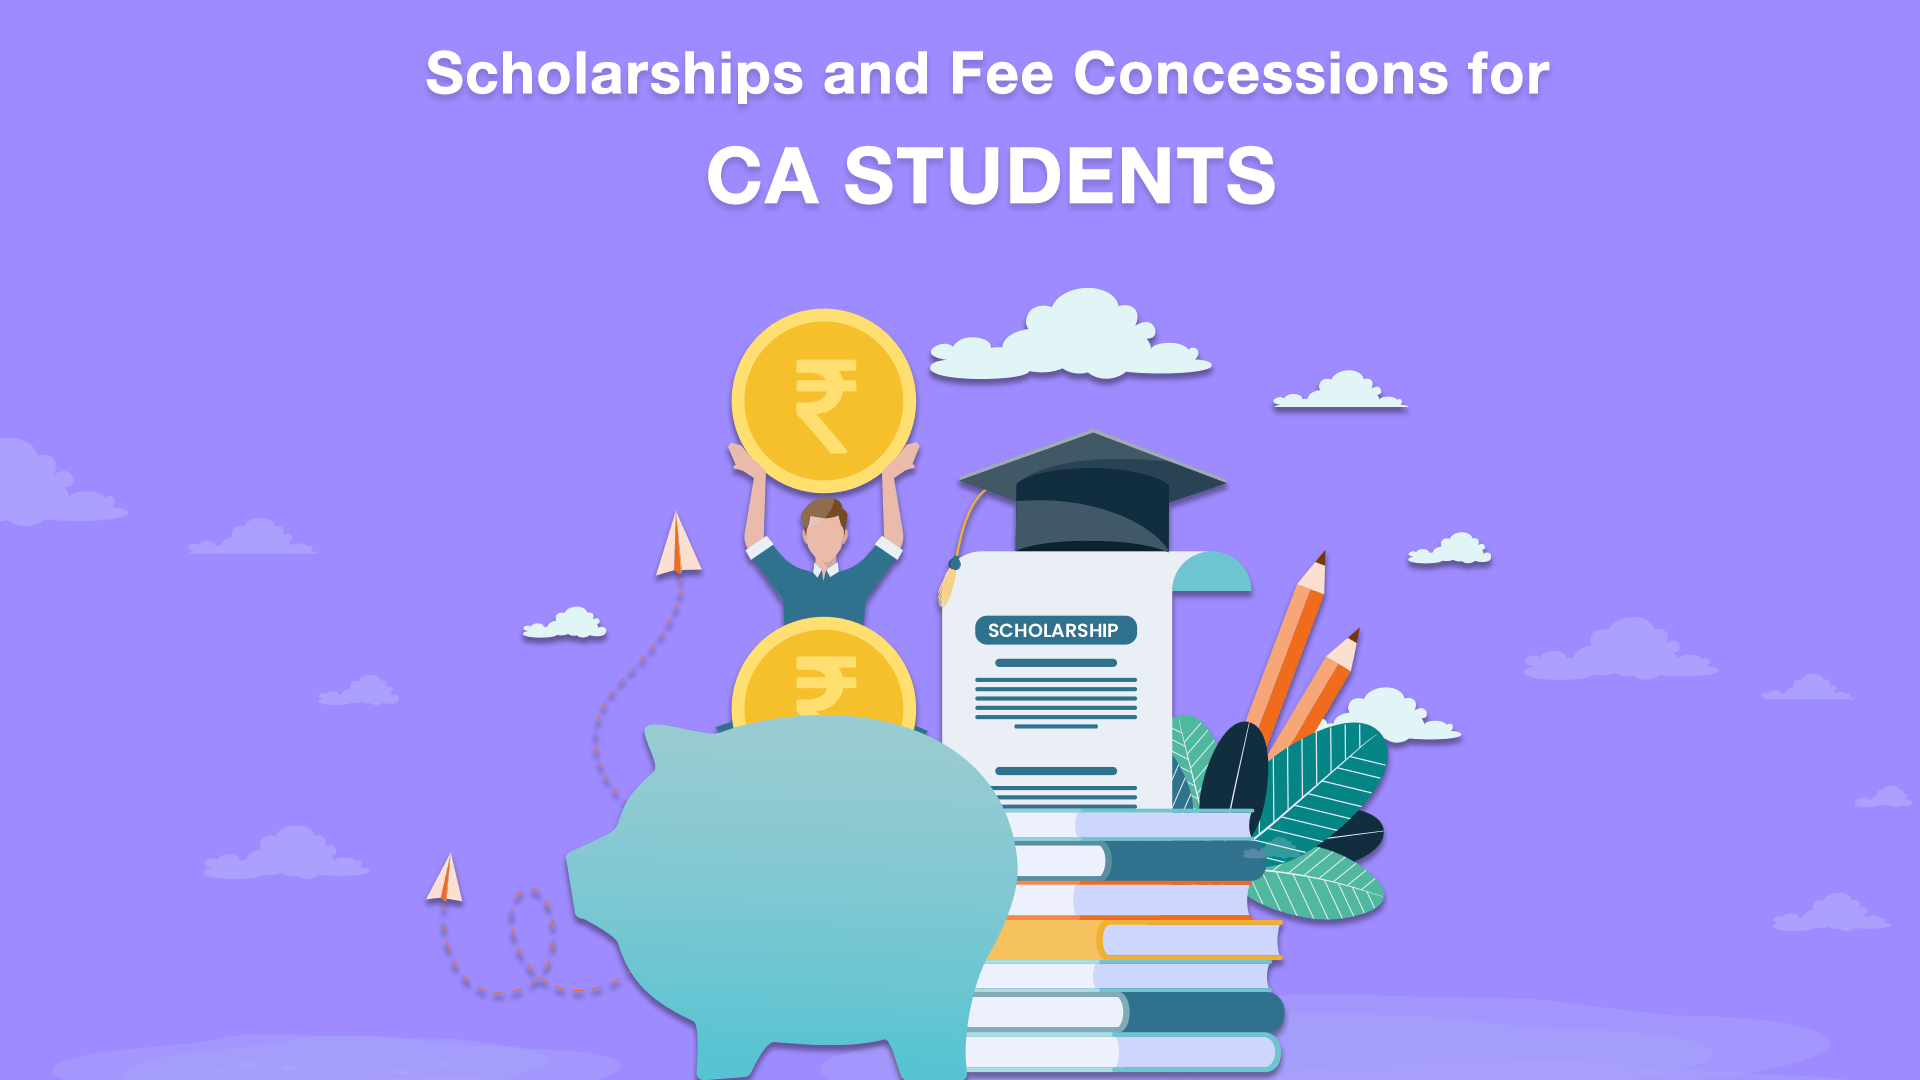 Scholarships and Fee Concessions for CA Students